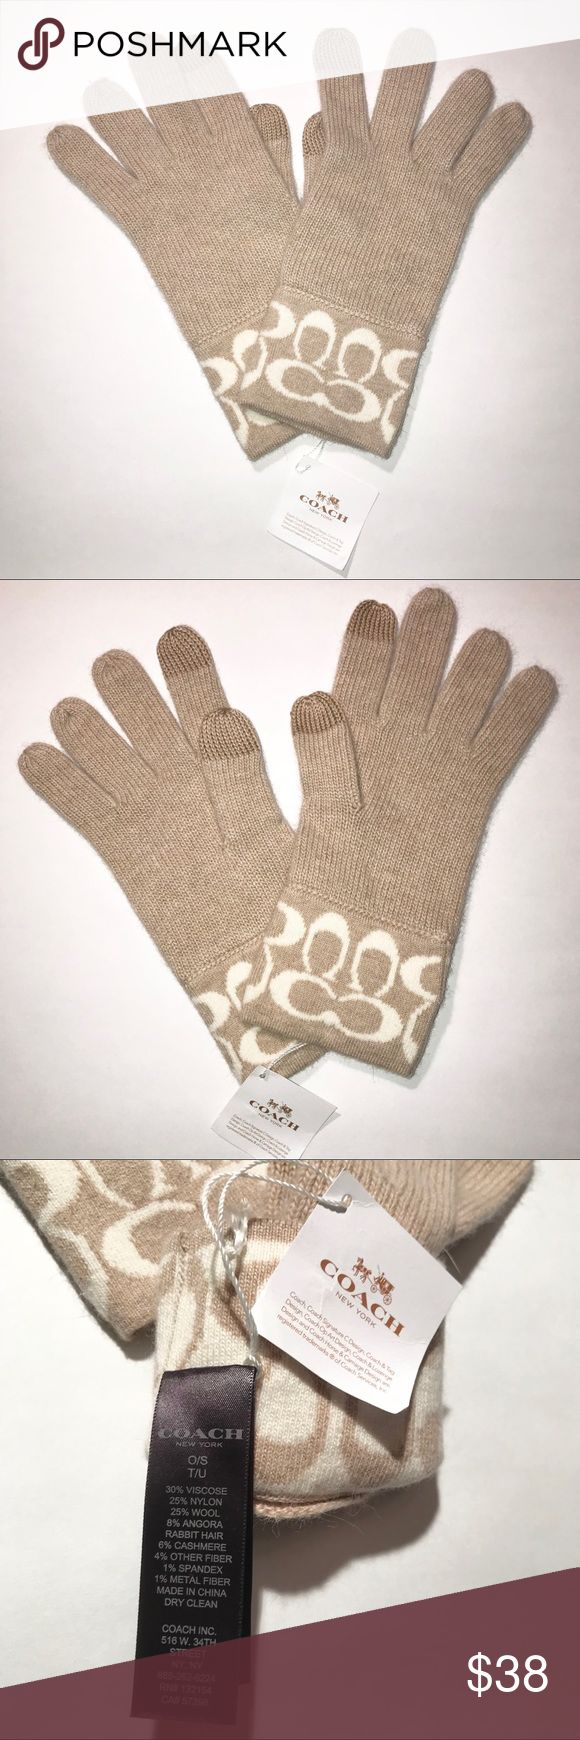 Coach Knit Logo Touch Gloves These New With Tags Coach gloves are cozy and cute in a neutral camel/ivory color combo that goes with everything. Conductive material in the pointer fingers and thumbs lets you use any standard touchscreen device while keeping your hands warm. Material: 30% Viscose, 25% Nylon, 25% Wool, 8% Angora Rabbit Hair, 6% Cashmere, 4% Other Fiber, 1% Spandex, 1% Metal Fiber Color: Camel/Ivory Coach Accessories Gloves & Mittens